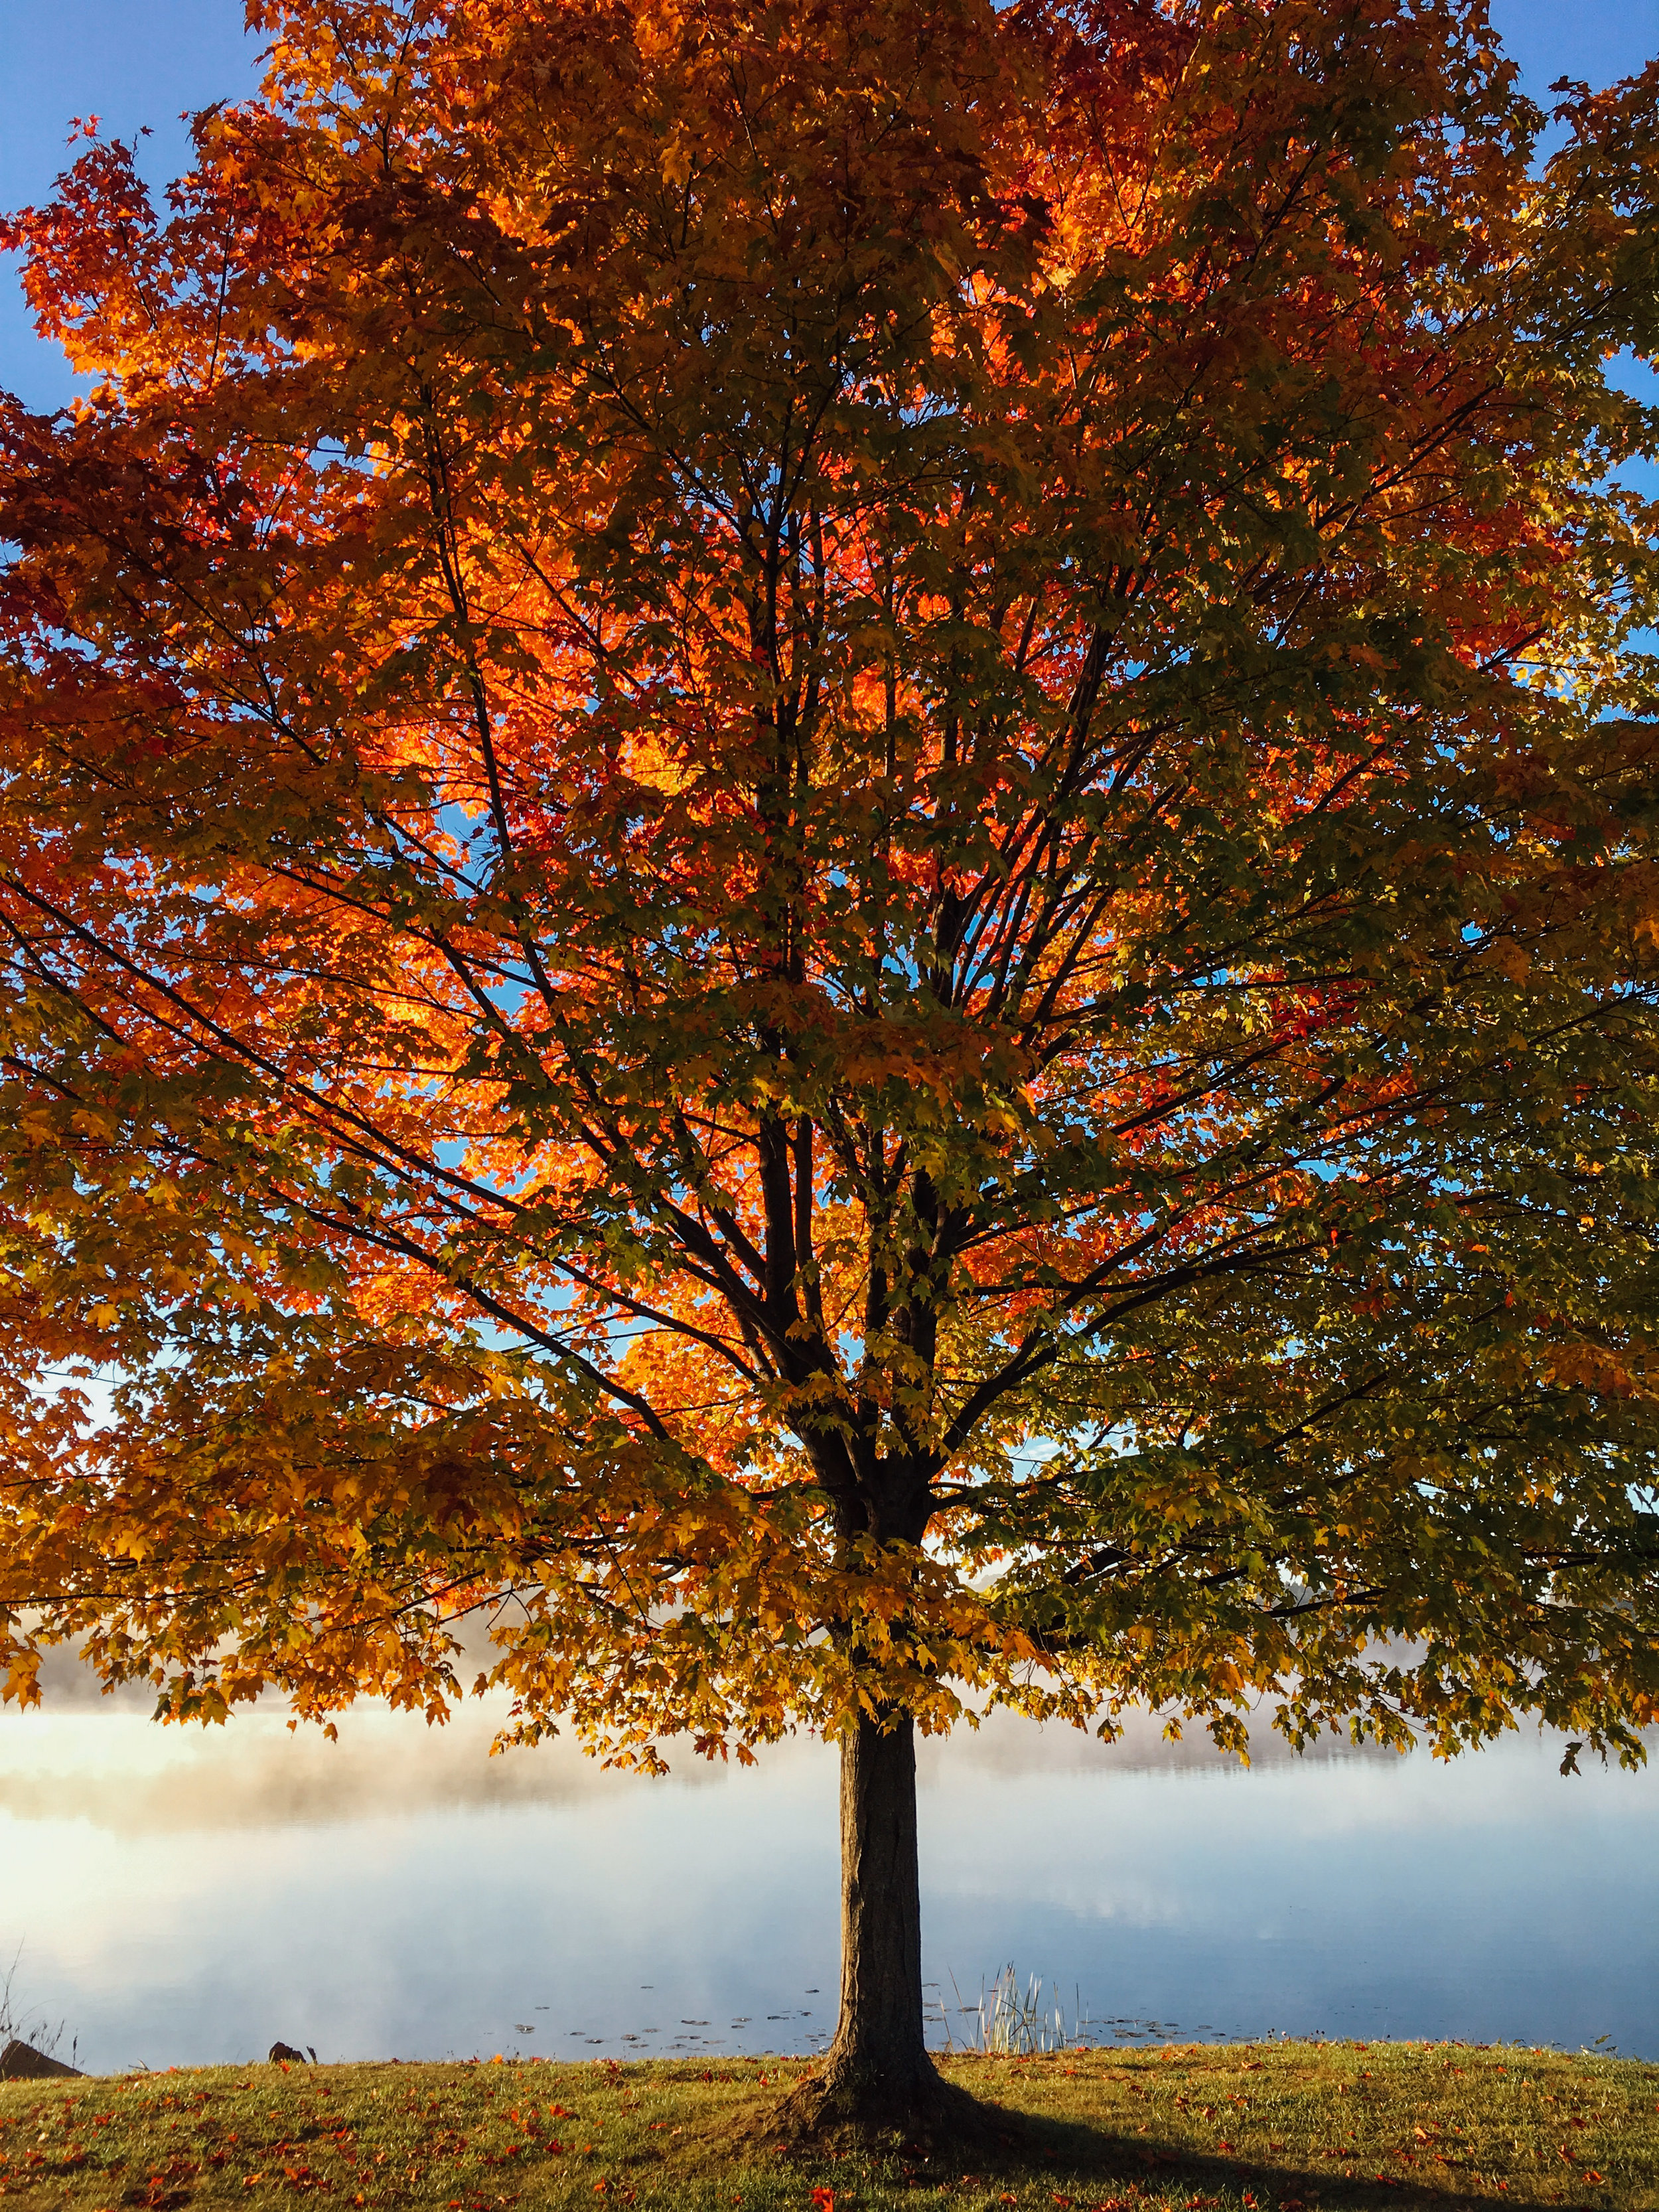 The Giving Forest: Buy a Leaf & Change a Life